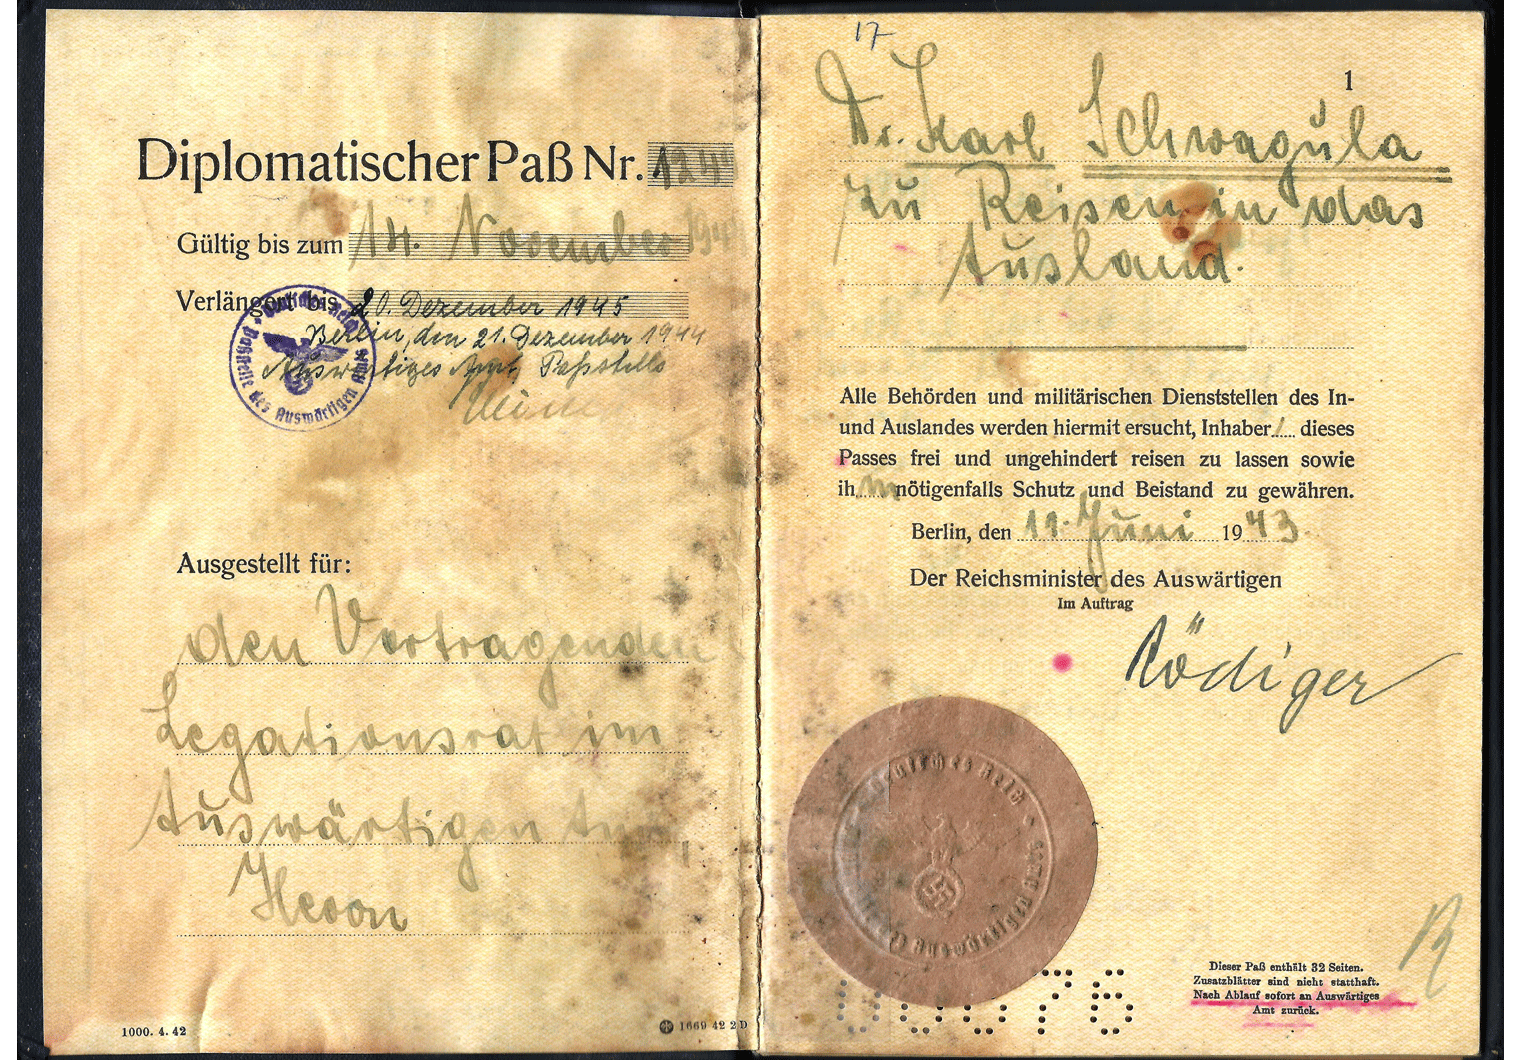 1943 German Diplomatenpass.